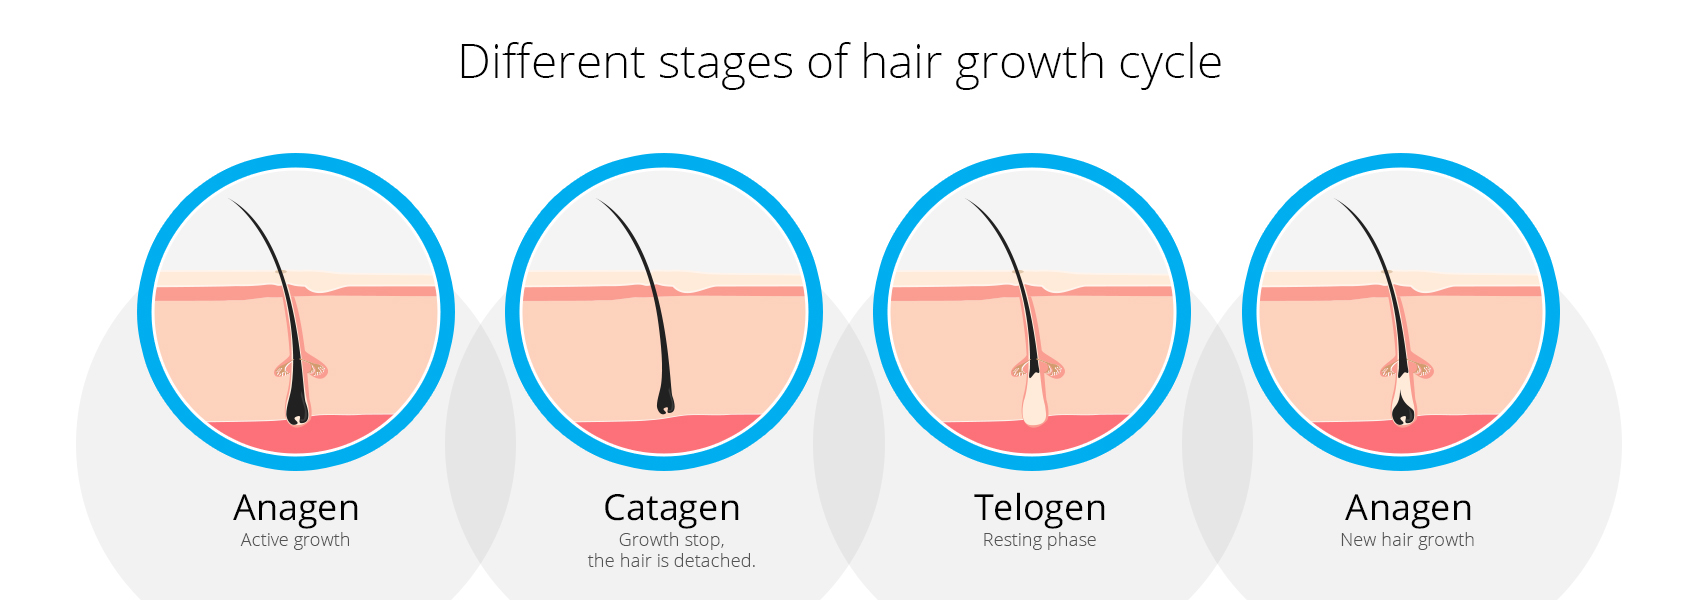 Diagram illustrating four different stages of hair growth